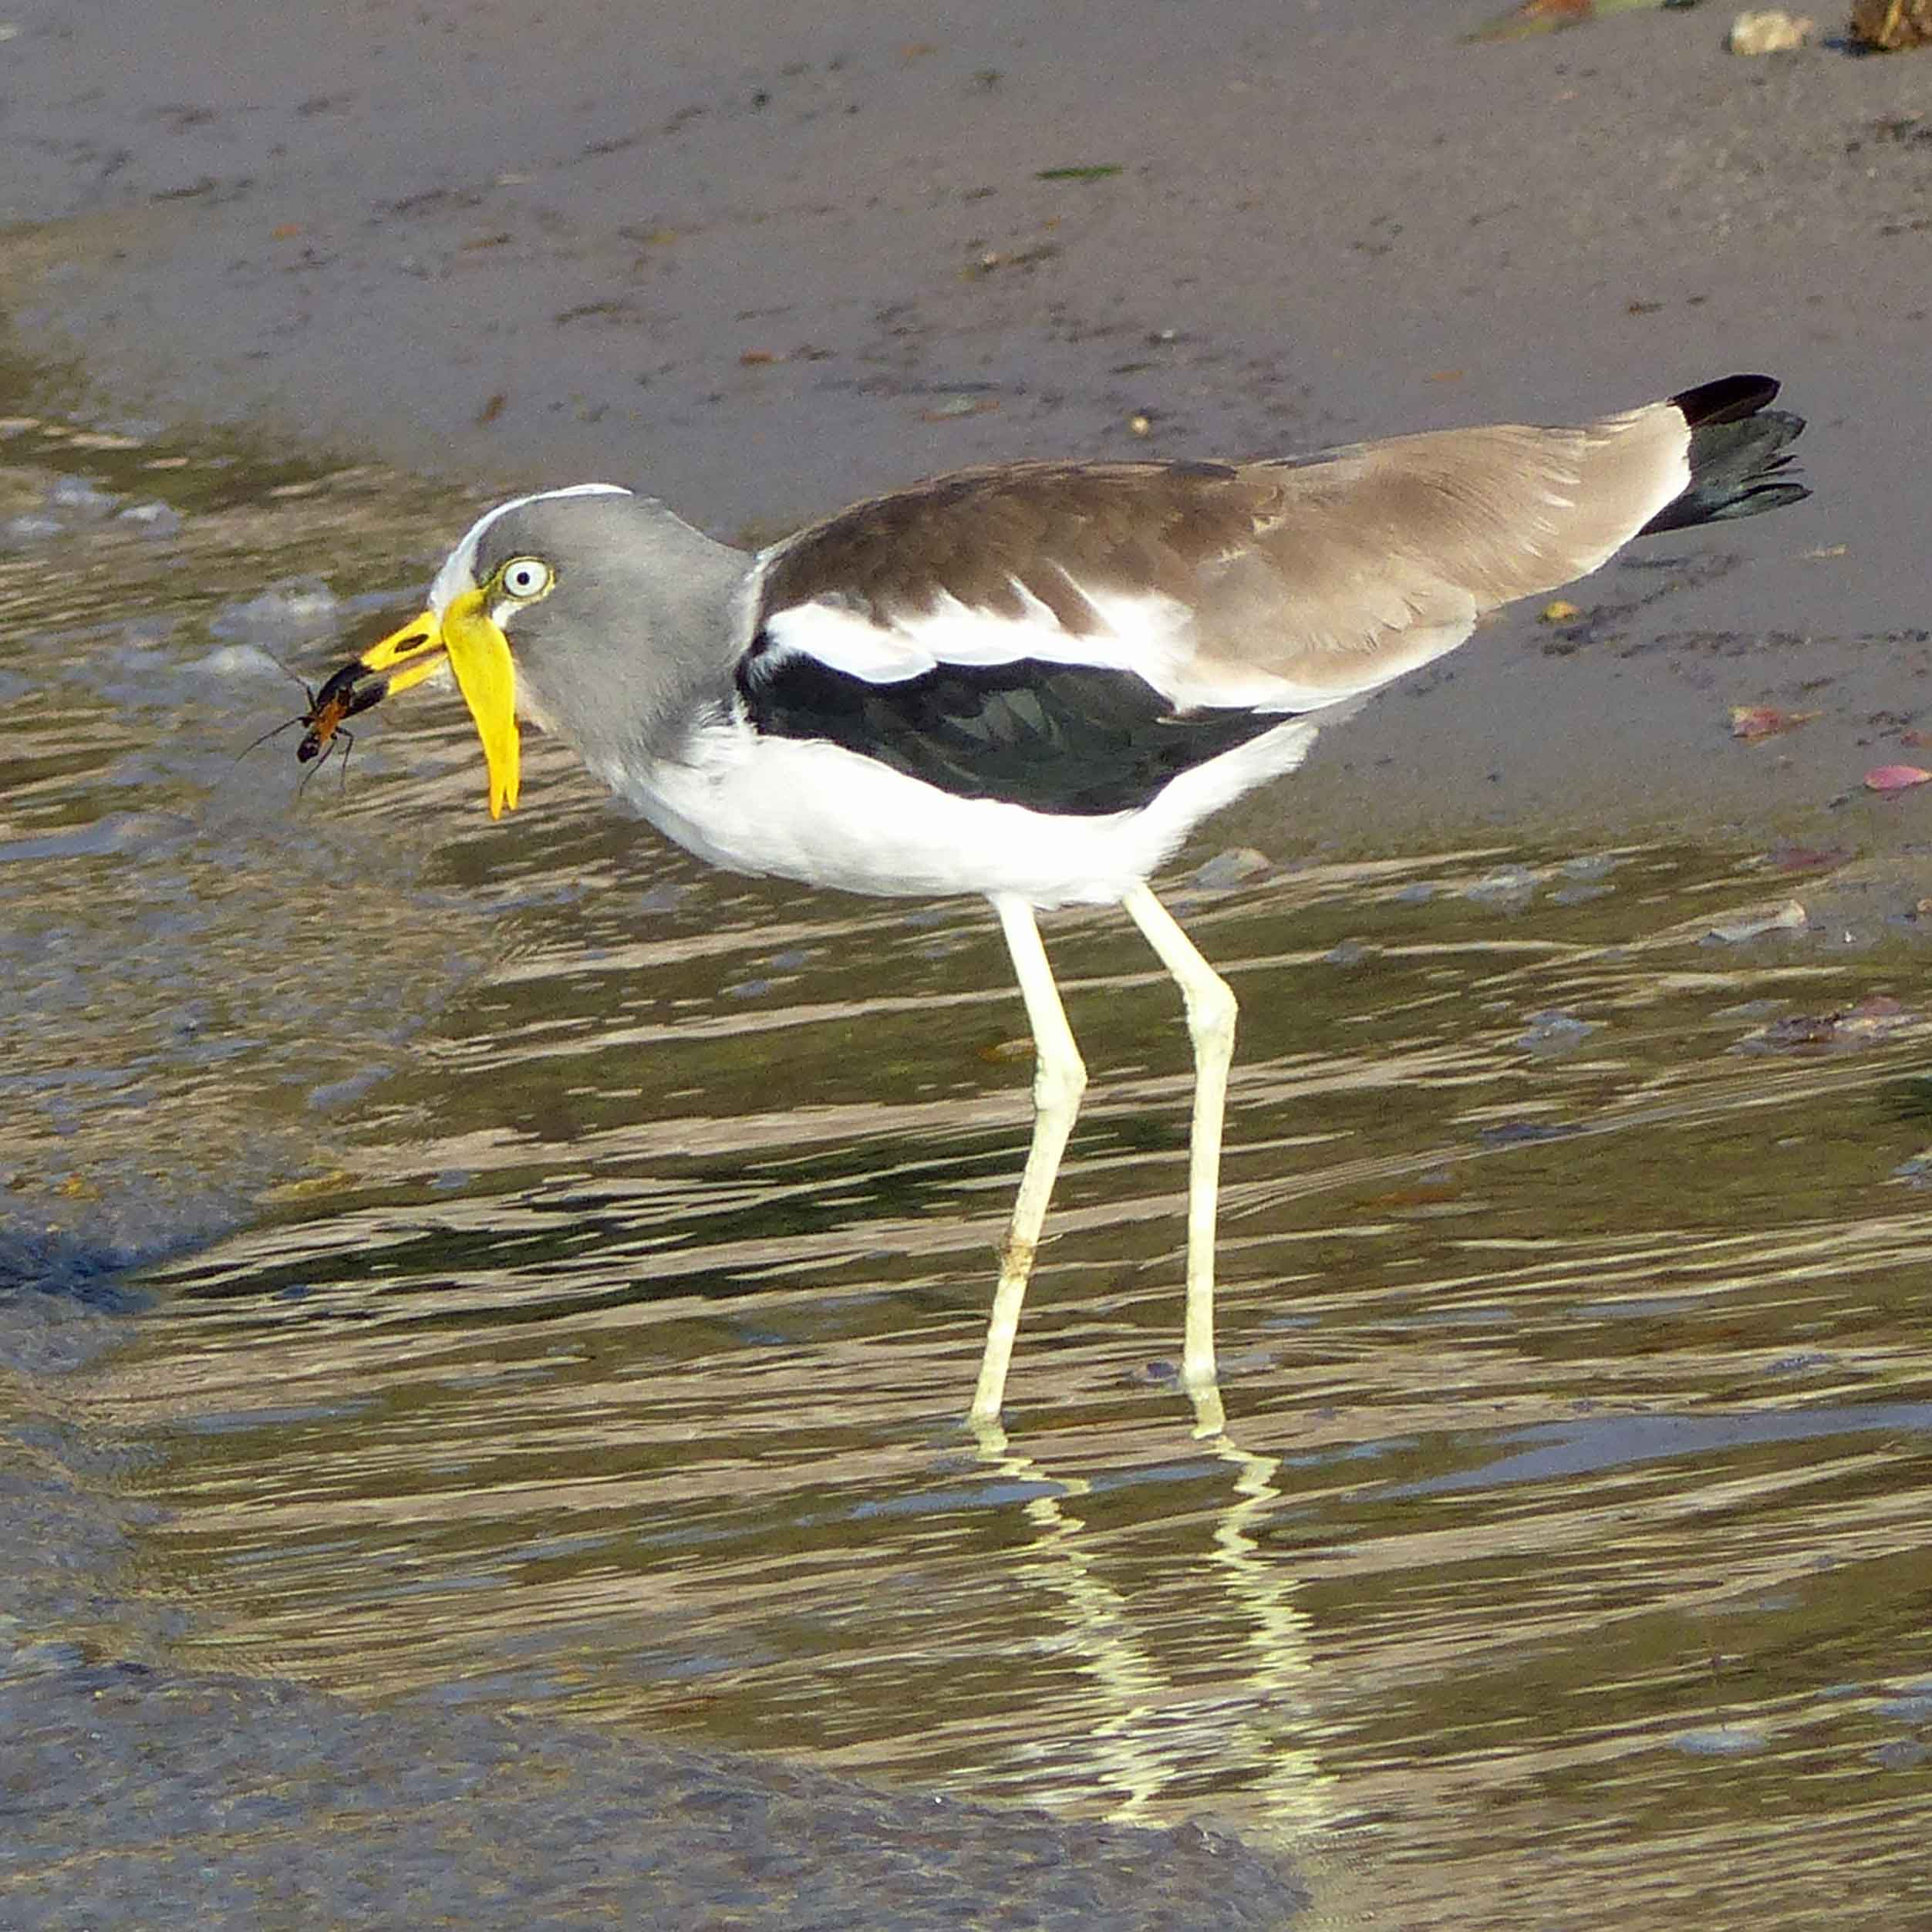 Long-legged bird catching an insect by a river